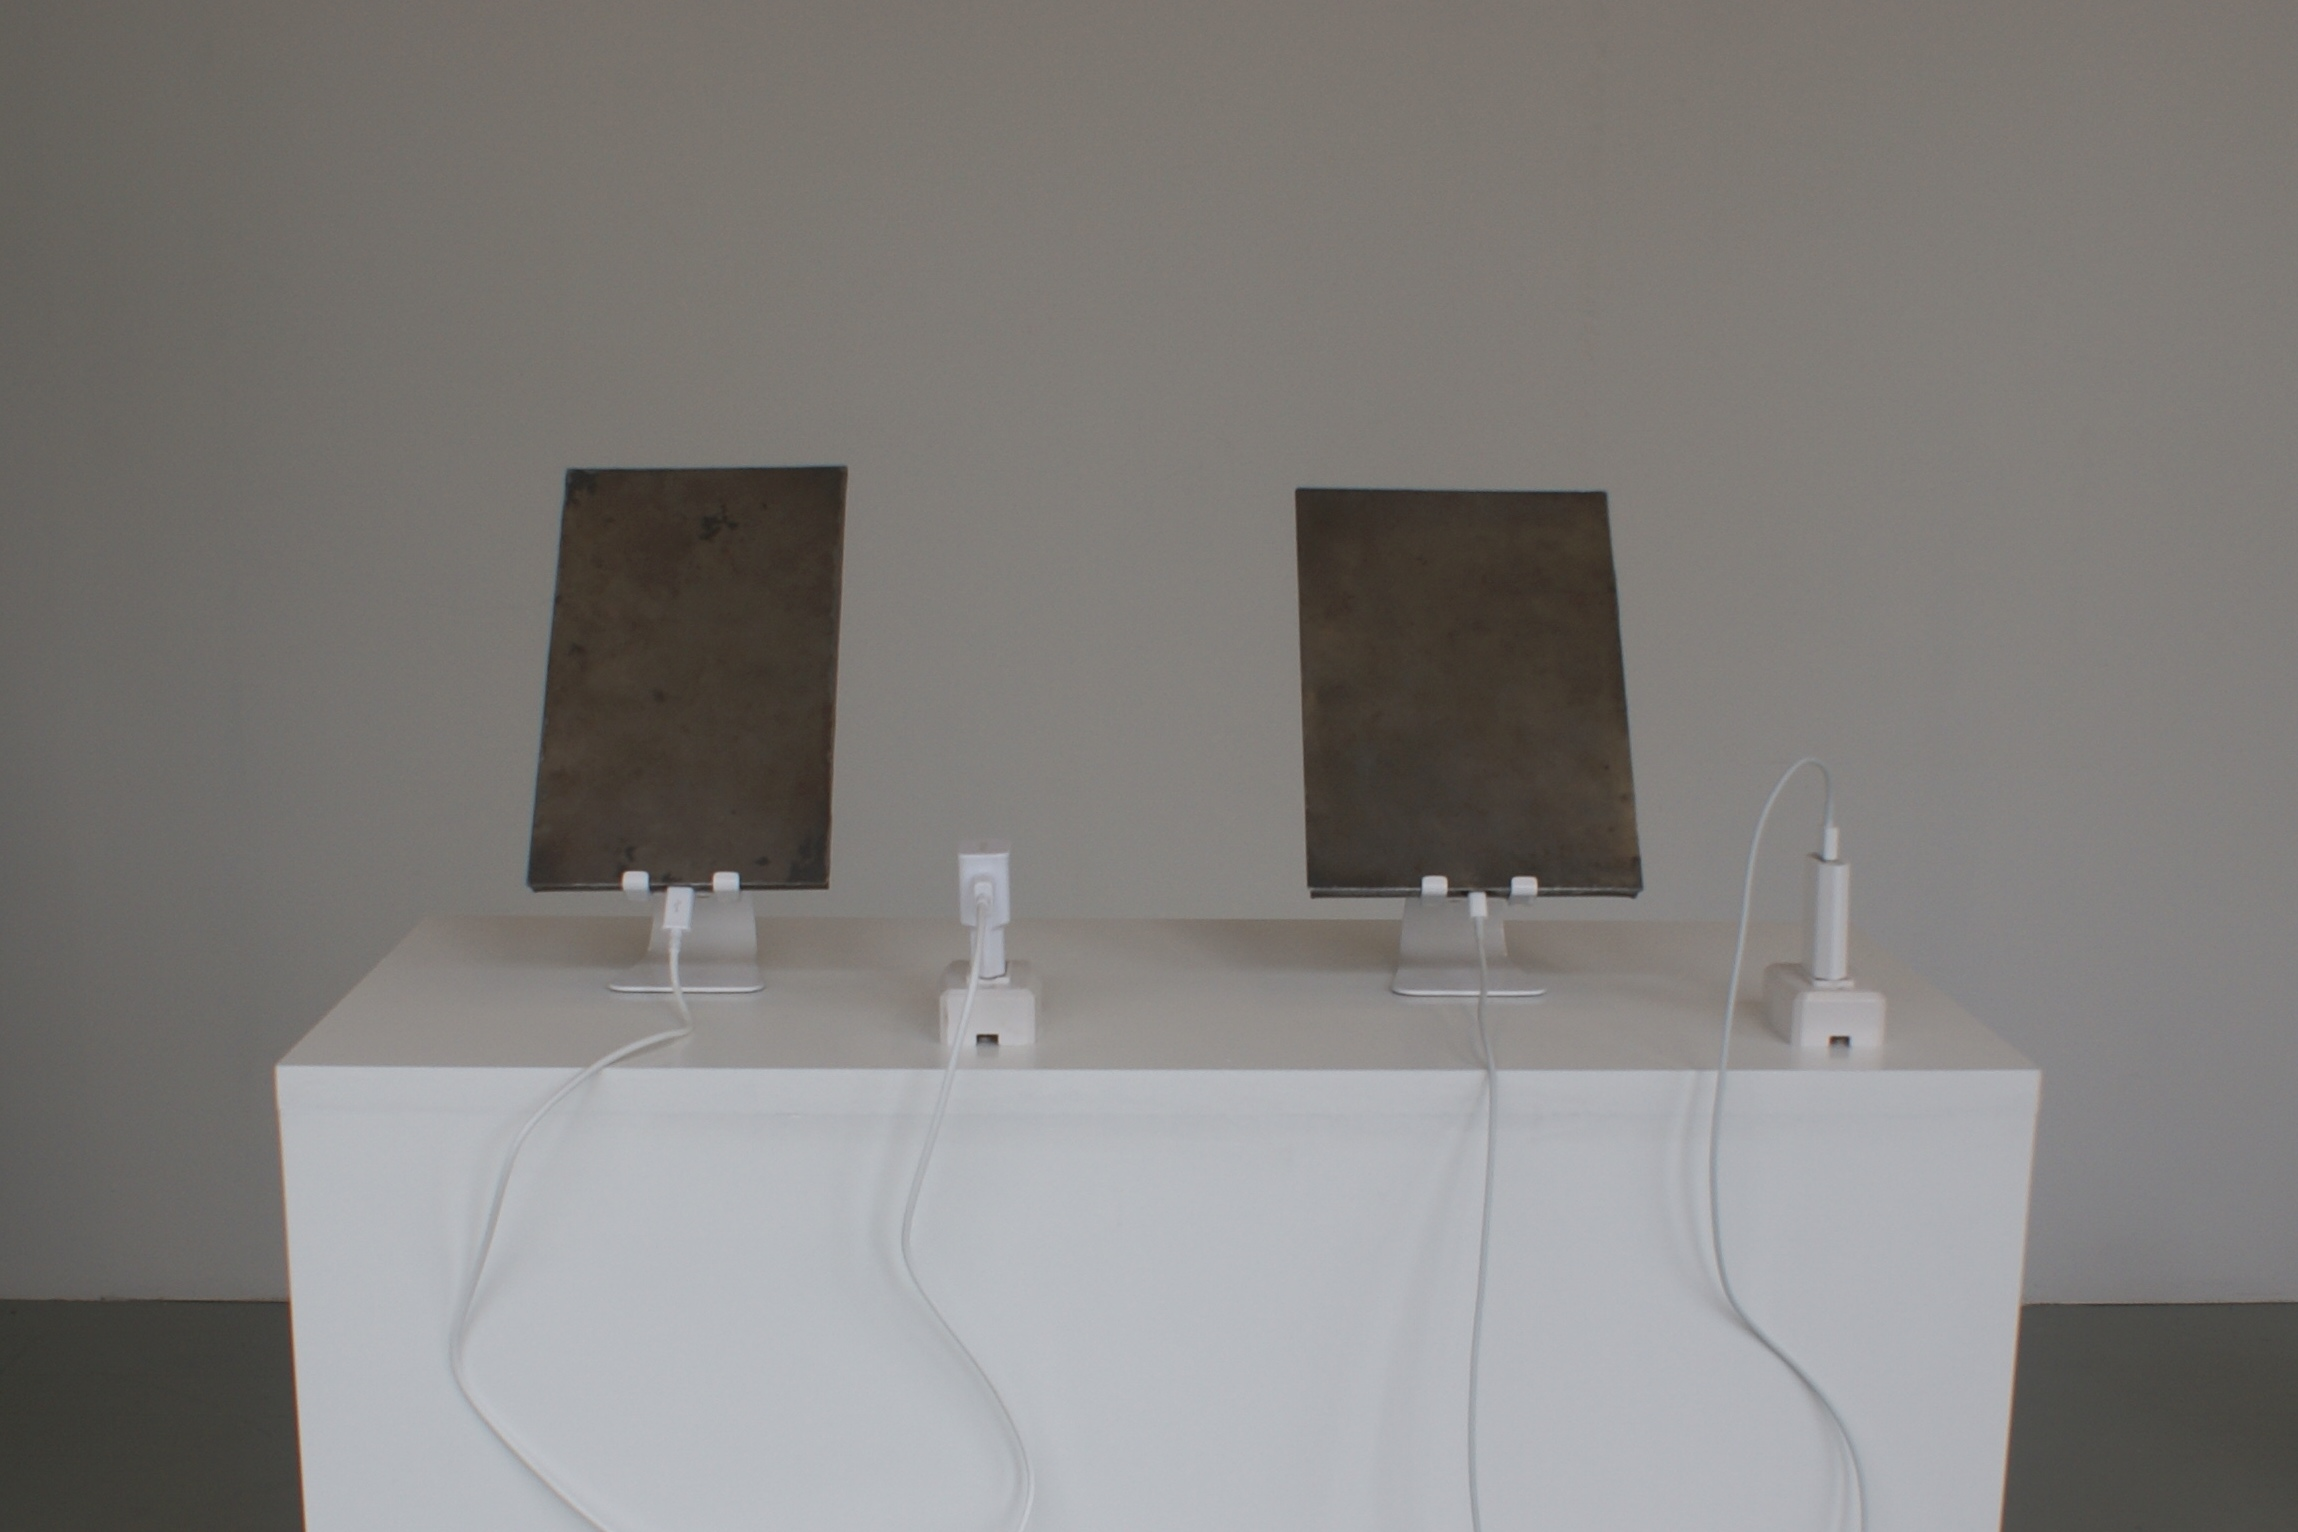 Dani Ploeger – Charging (2014-15). Two tablet computers have been made unbreakable. They have been wrapped in plate steel by traditional metal workers in Cairo. Only the charging sockets remain accessible. They will be charging for a long time.